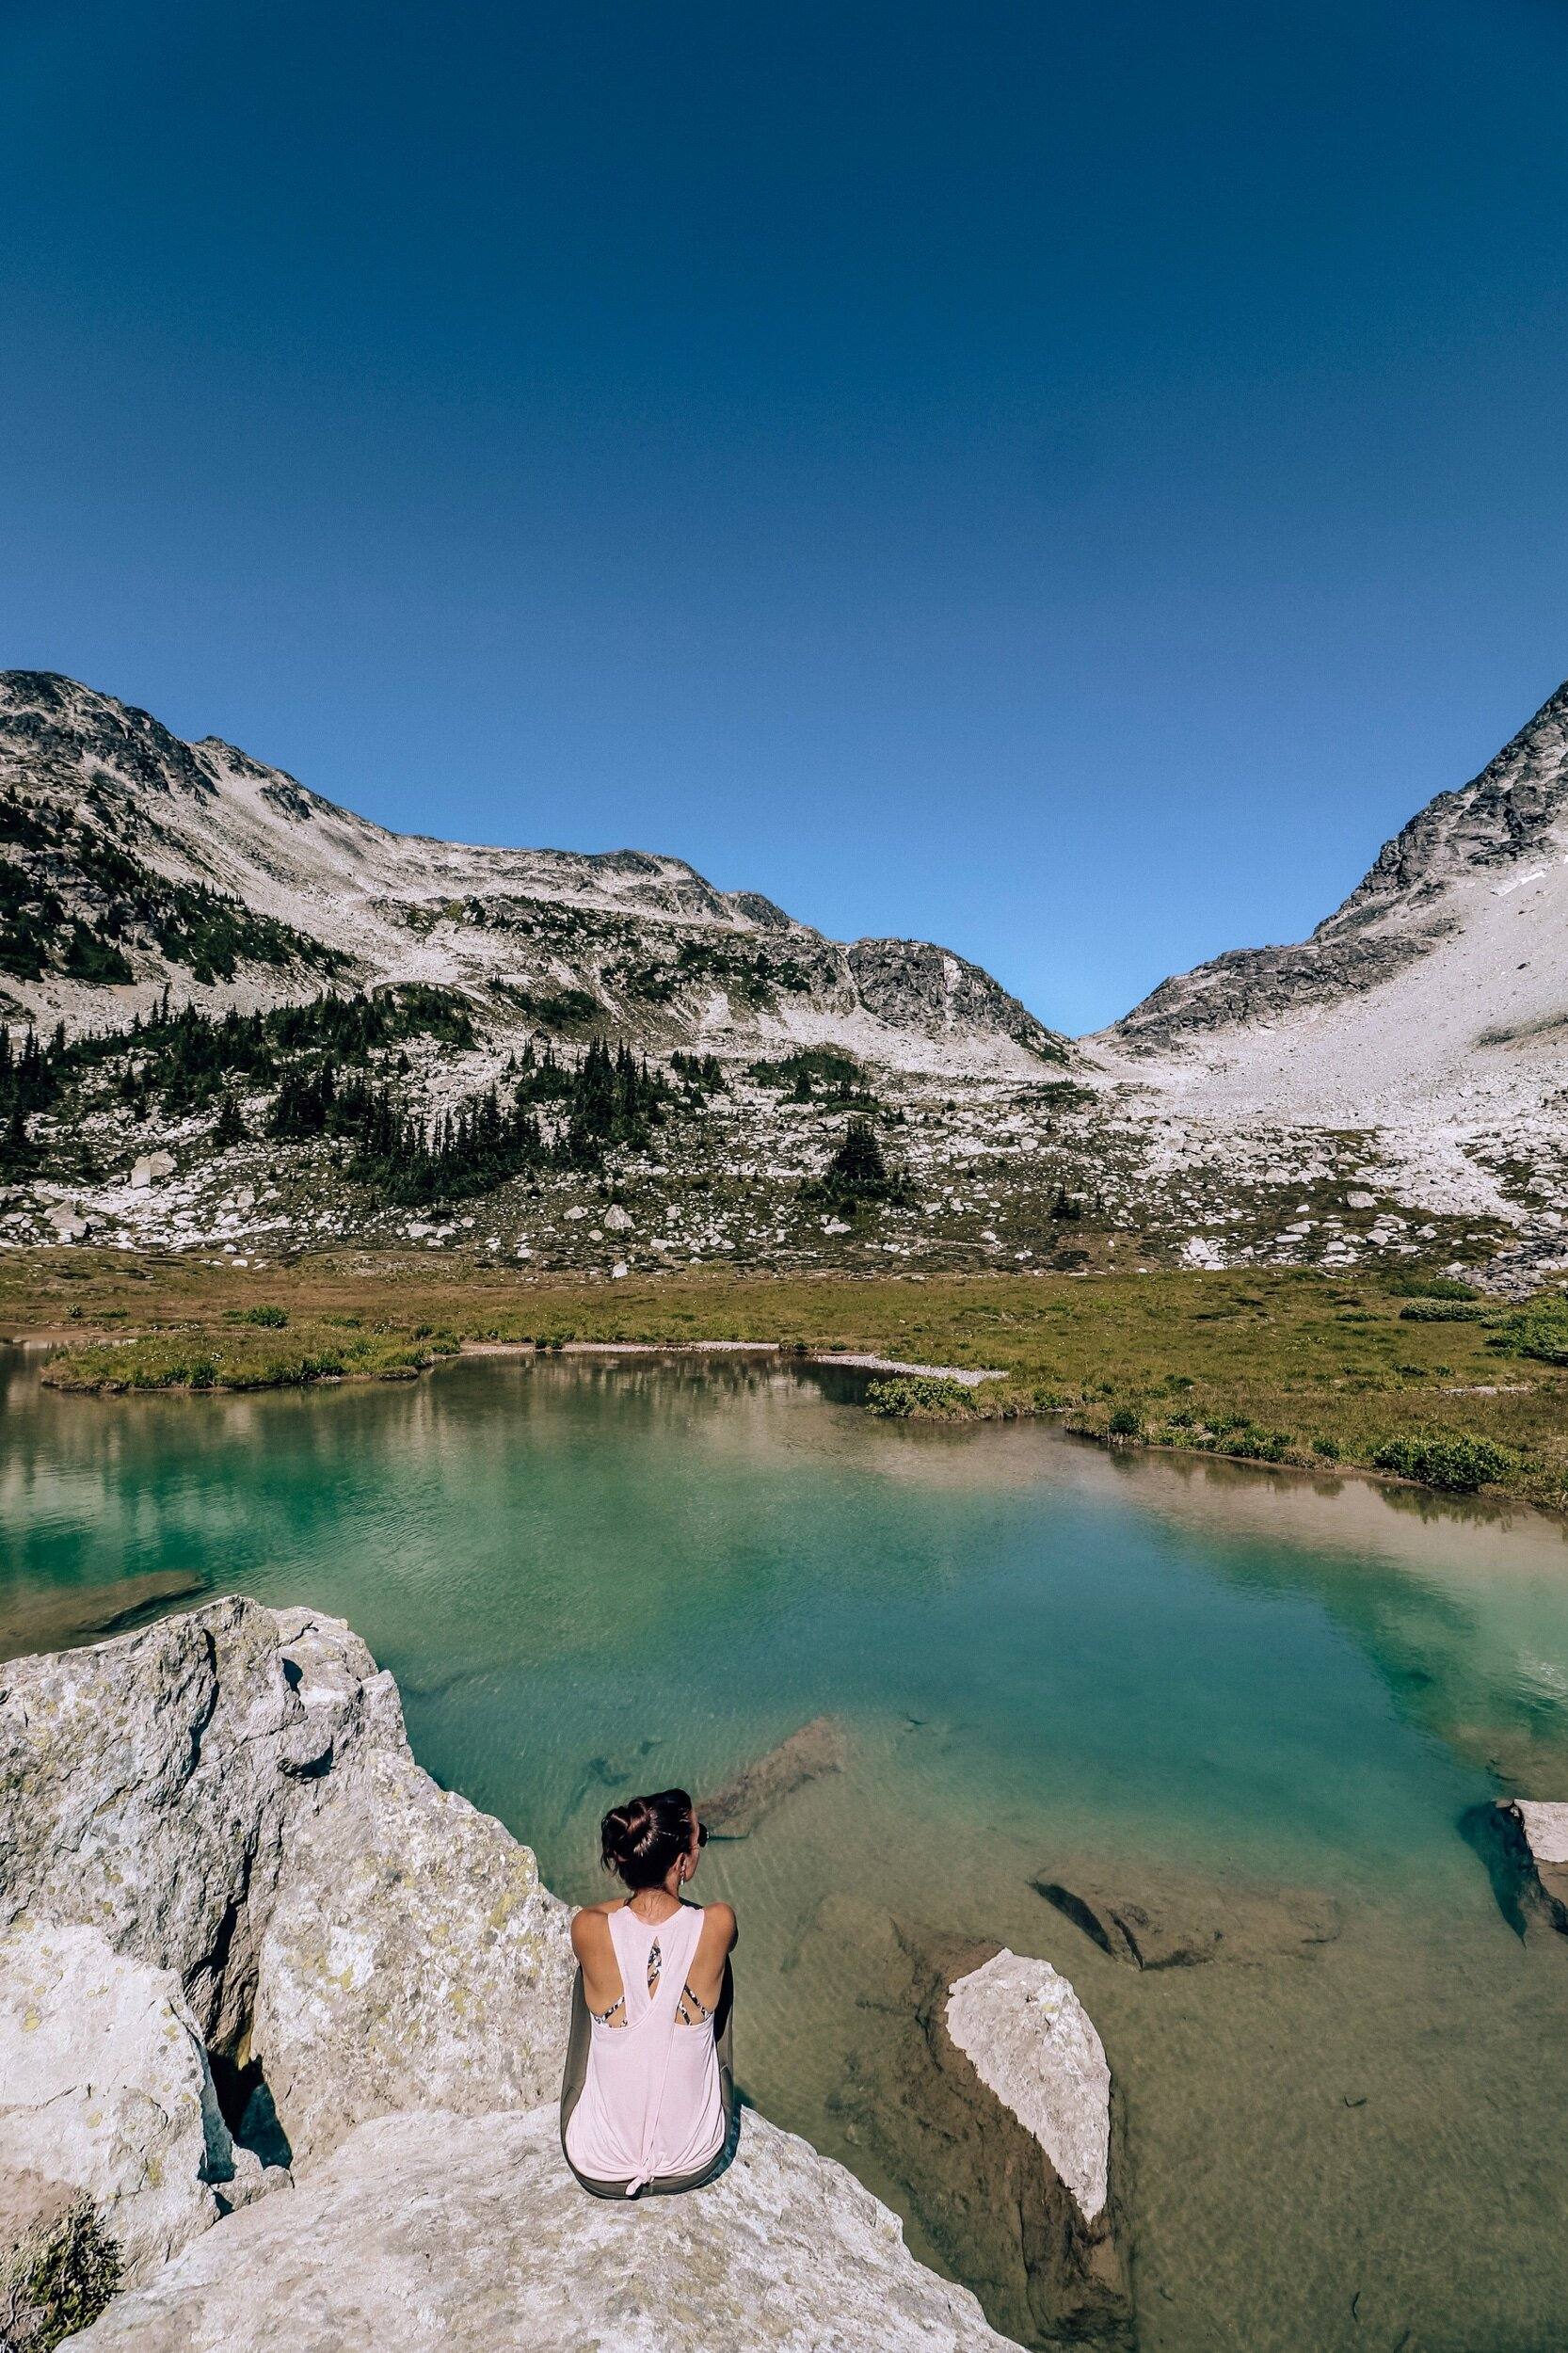 Whistler alpine meadows and lake hikes